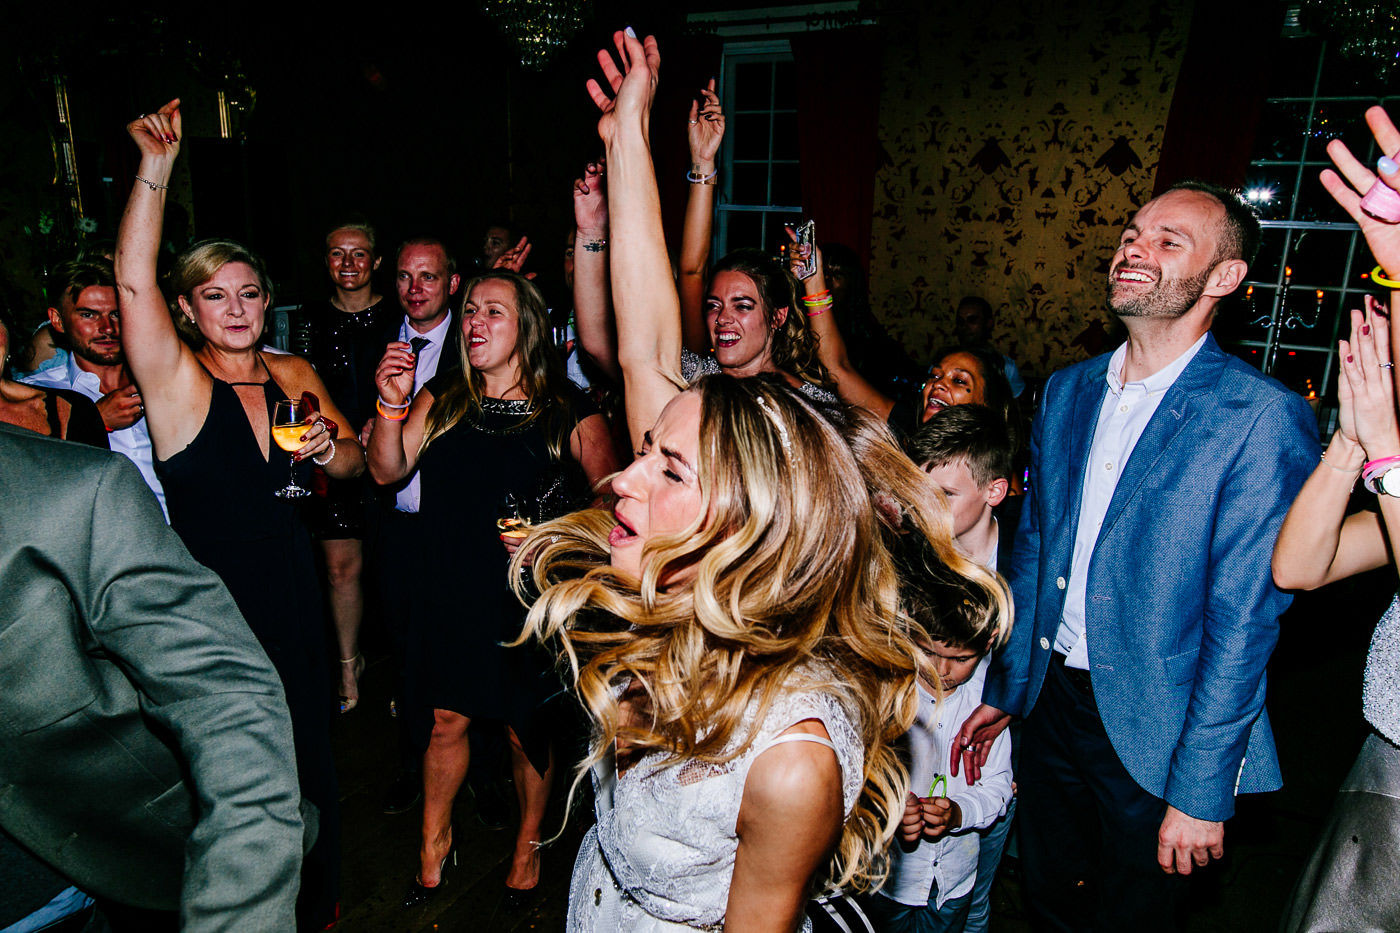 The-bell-in-Ticehurst-pub-kent-wedding-photographer-London-Epic-Love-Story-106